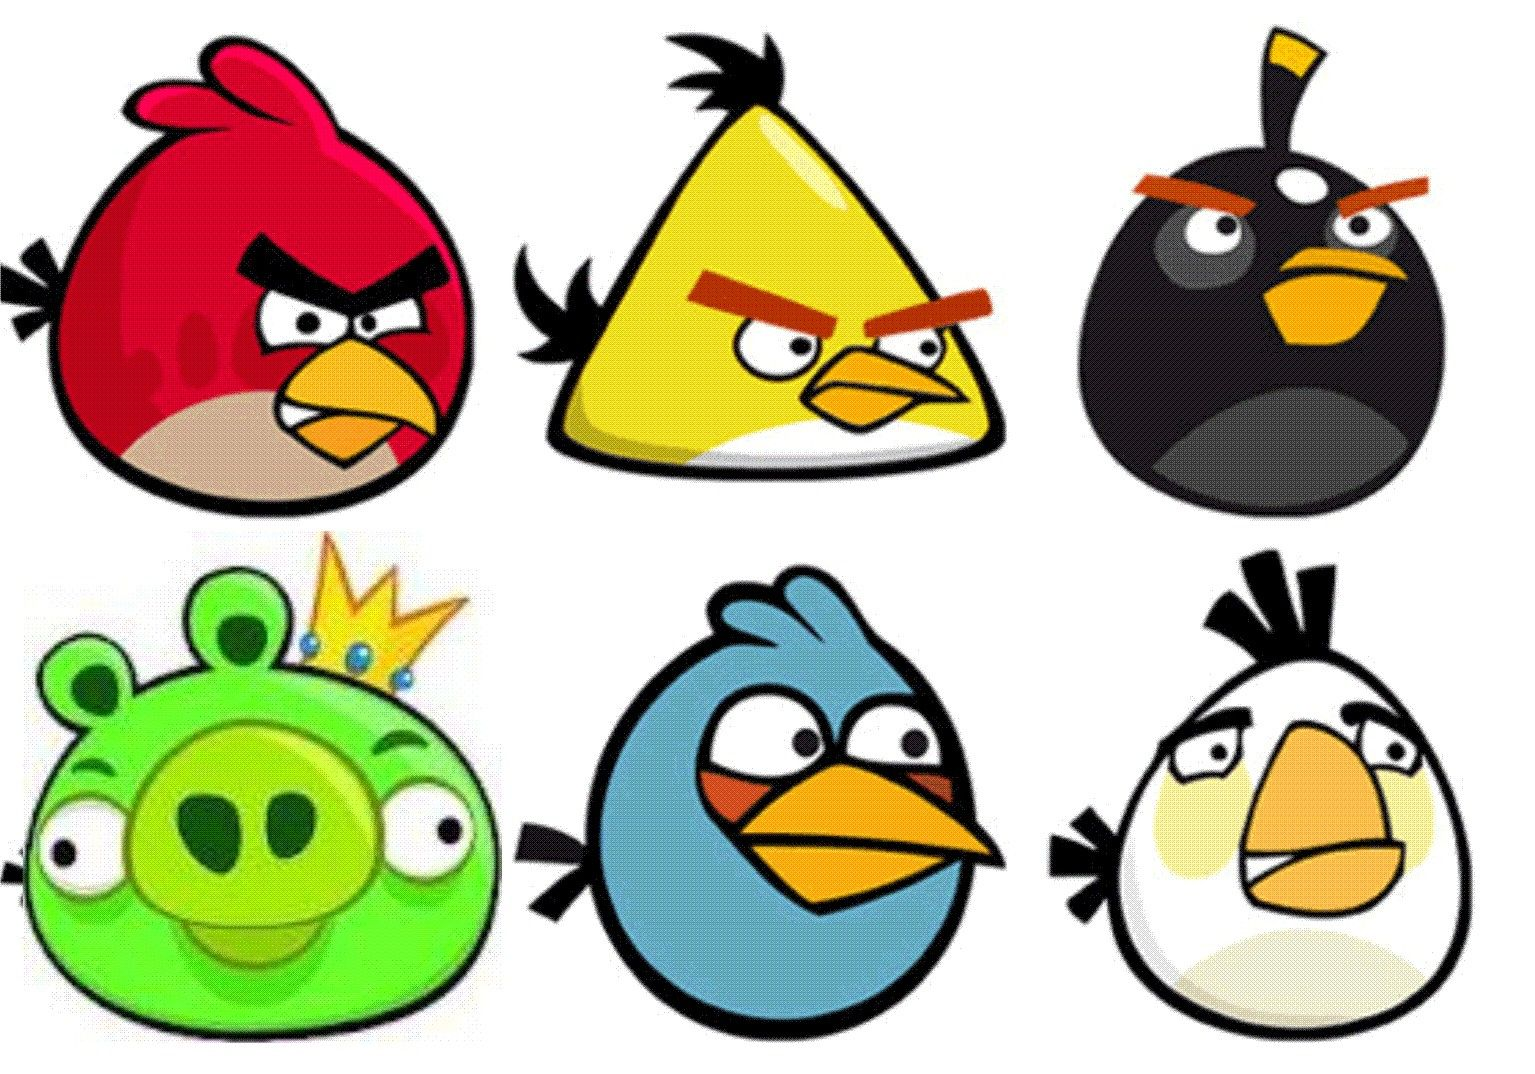 Angry Birds Paper Plates - a fun craft for kids to make!  sc 1 st  Pinterest & Angry Birds Paper Plates - a fun craft for kids to make! | Angry ...